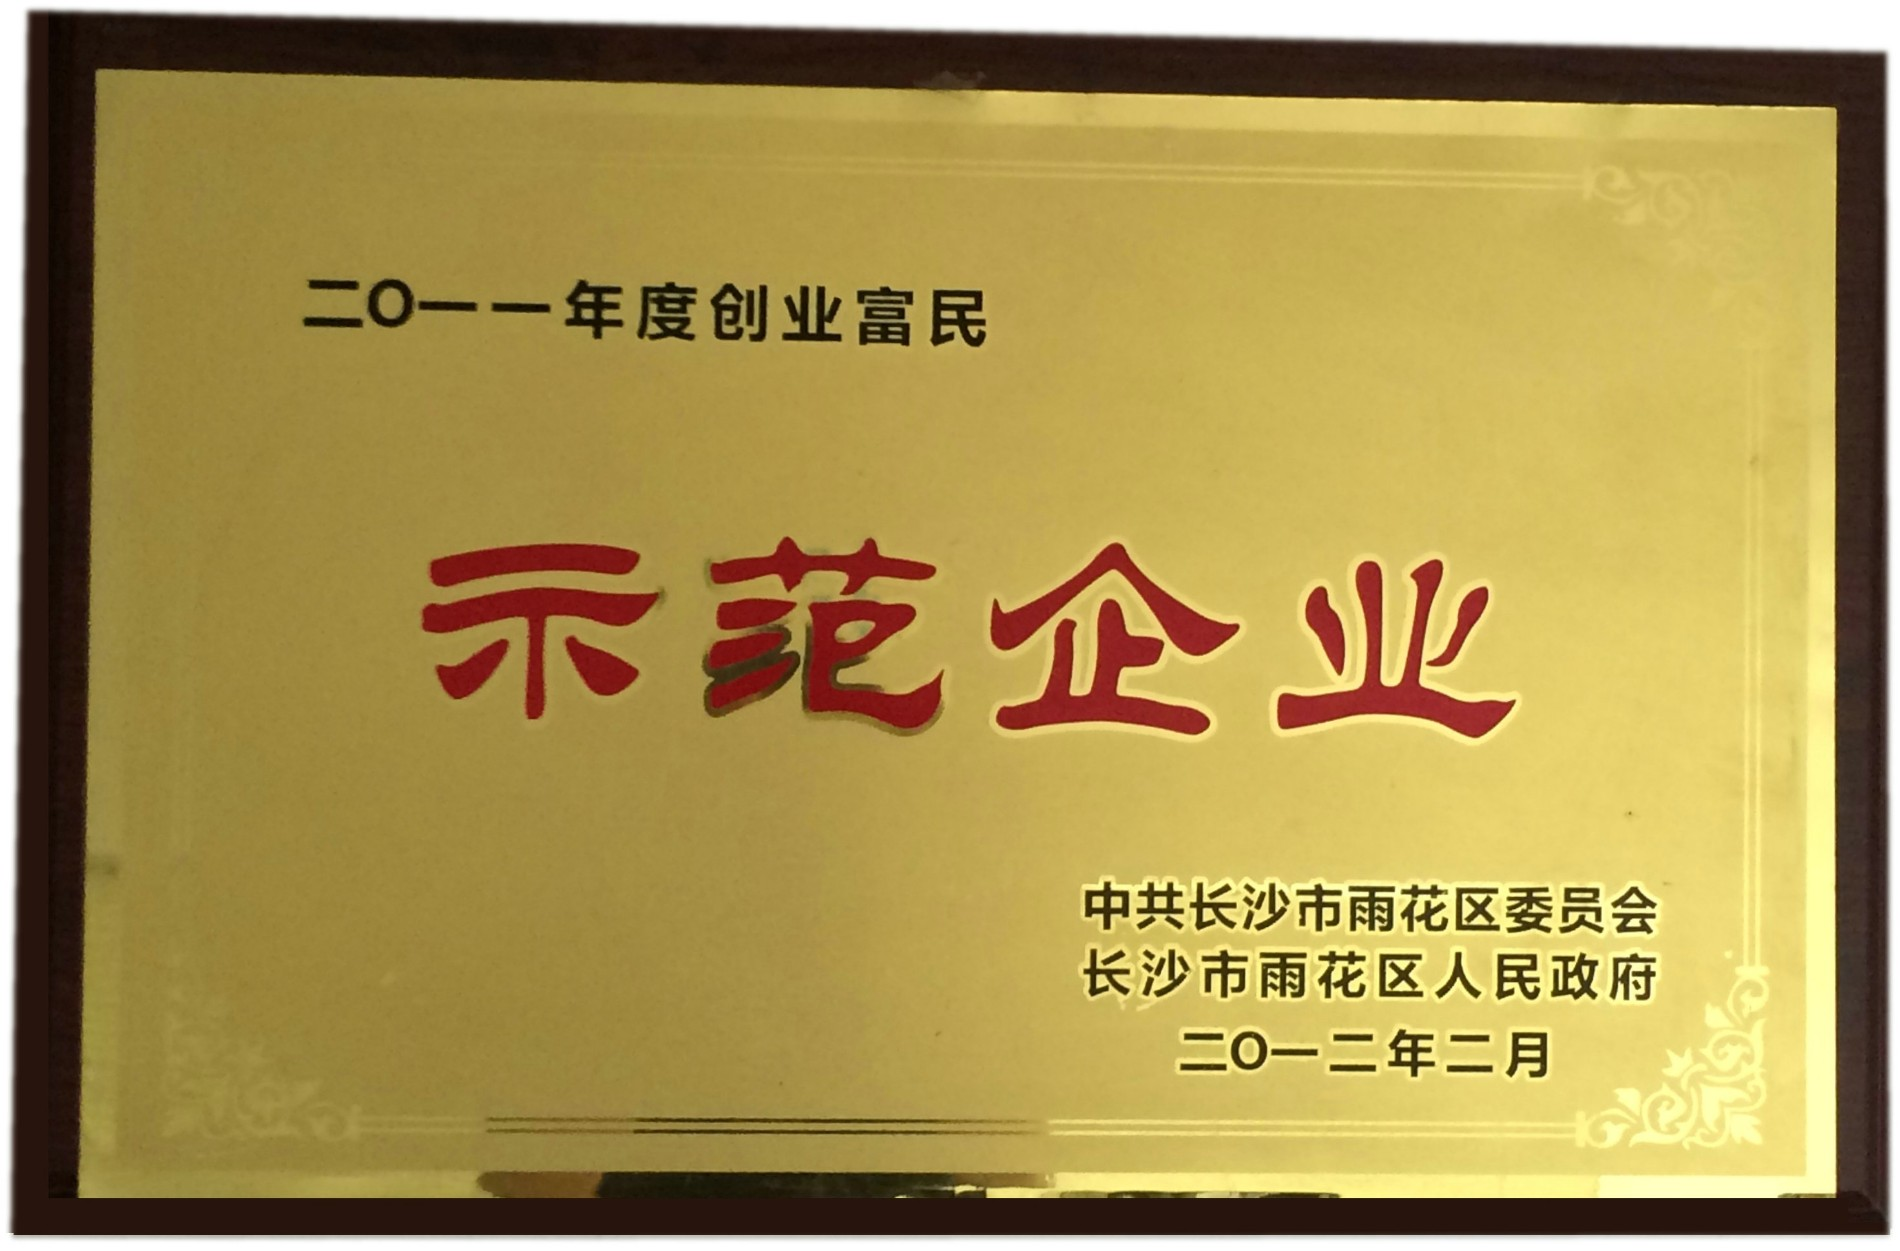 High-technology enterprise certificate,Enterprise listing Award,Economic operation Contribution Award,Demonstration enterprise,Hunan Famous trademark,